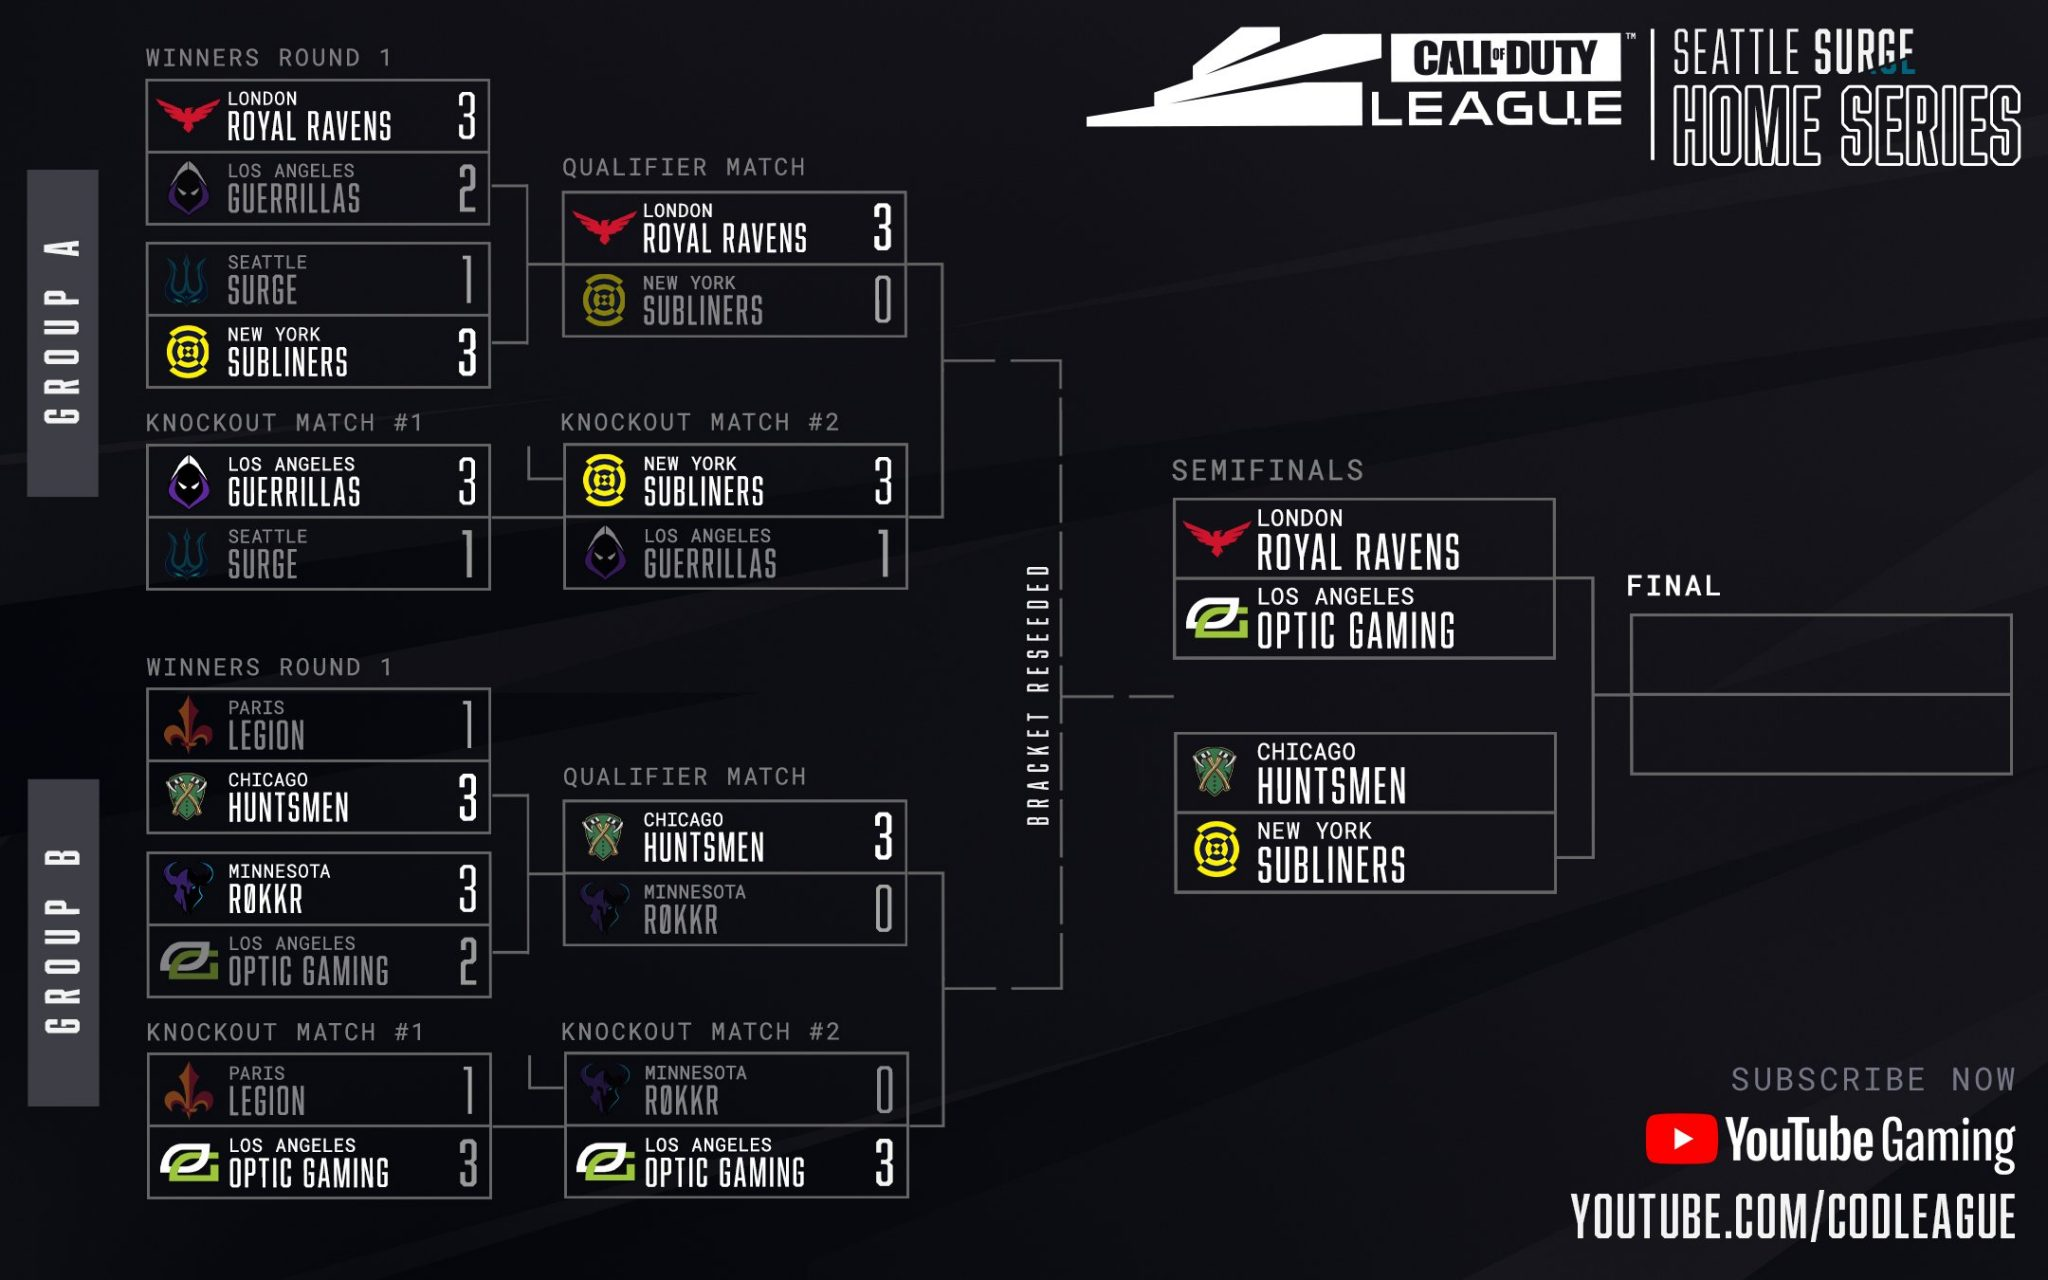 CDL Sunday Seattle Home Series Bracket